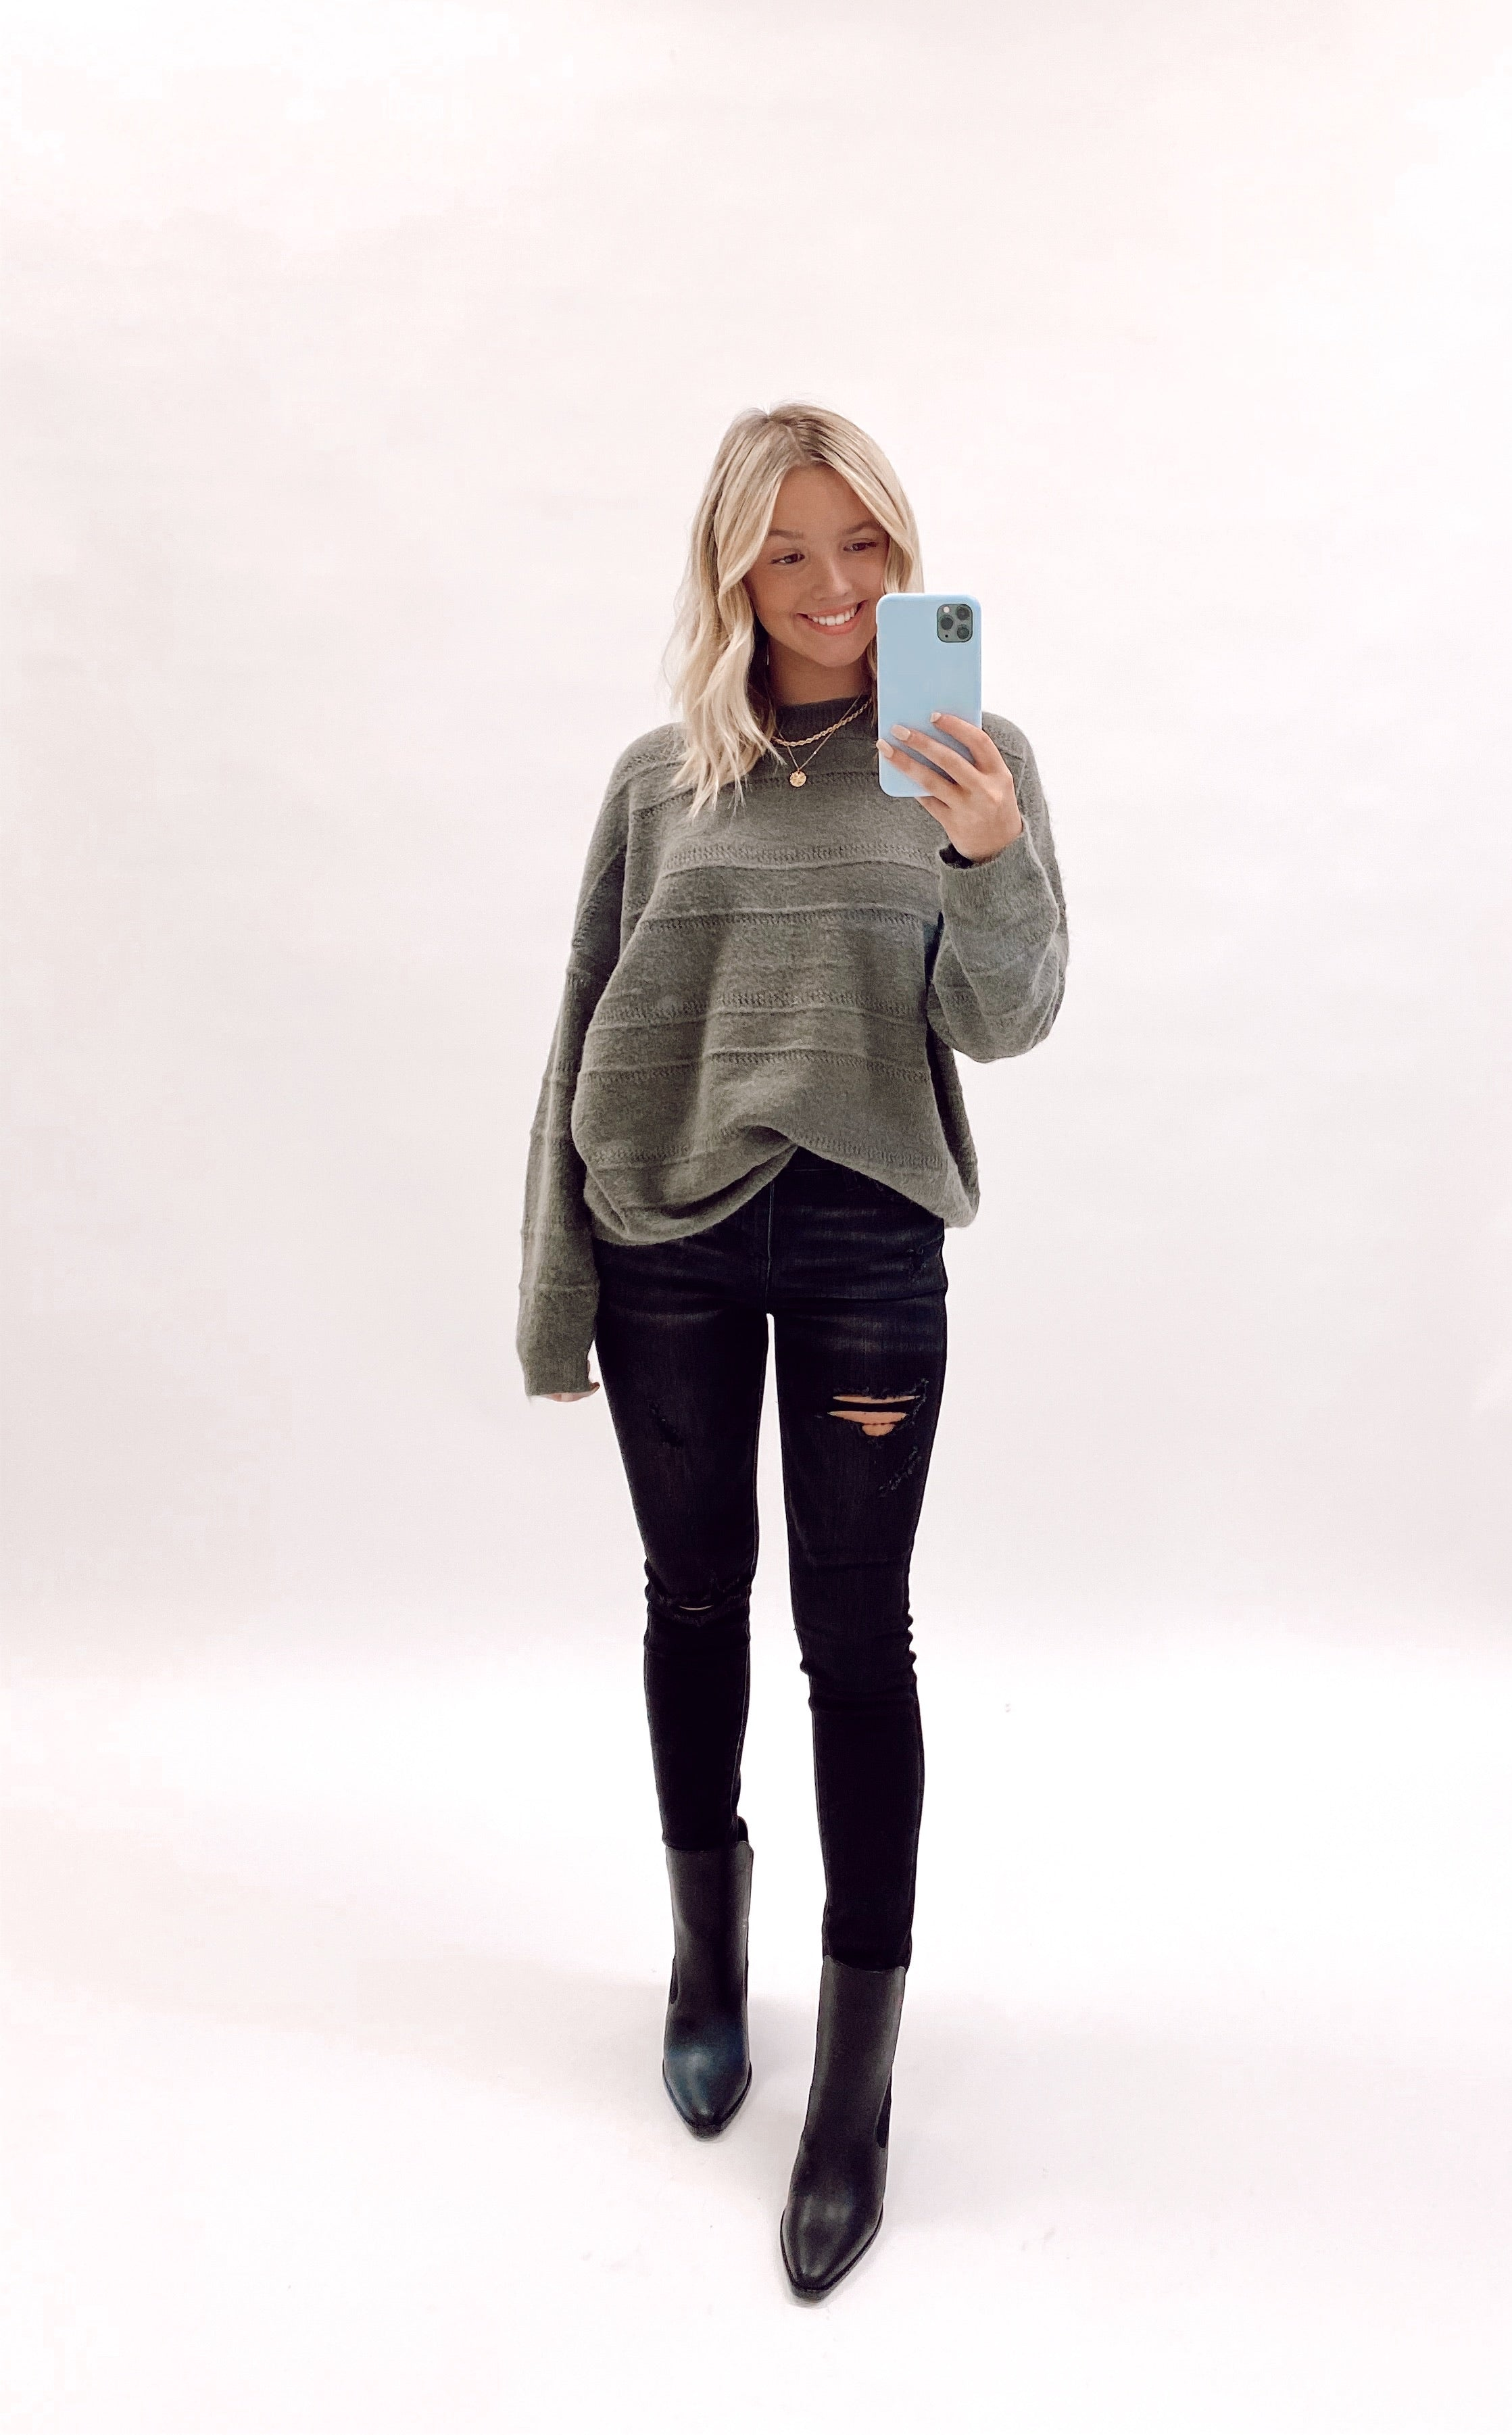 Gemma Sweater